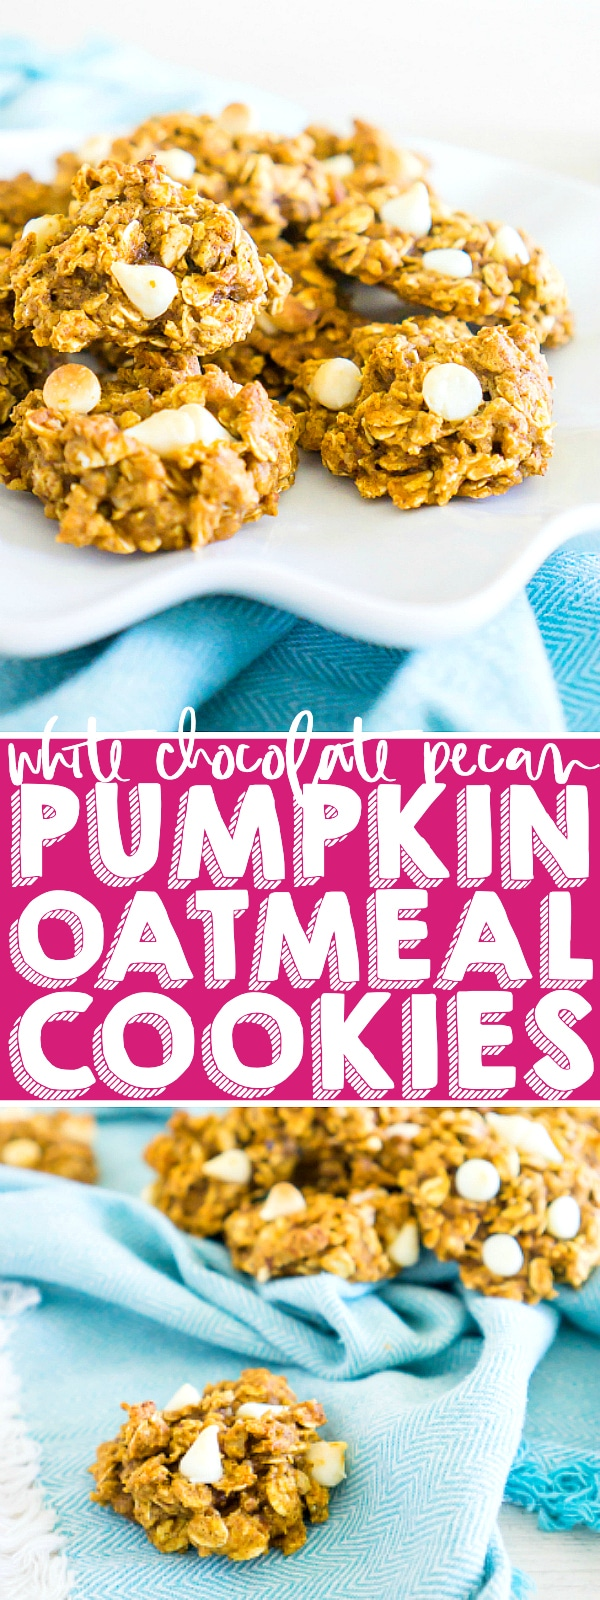 Combine the perfect fall flavors of pumpkin, oatmeal, nutmeg, and cinnamon into delicious White Chocolate Chip Pumpkin Oatmeal Cookies that are so addicting you will want them with your coffee in the morning! These Pumpkin Oatmeal Cookies will be one of your new fall cookie favorites! | The Love Nerds #pumpkincookies #thanksgivingdessert #cookierecipe